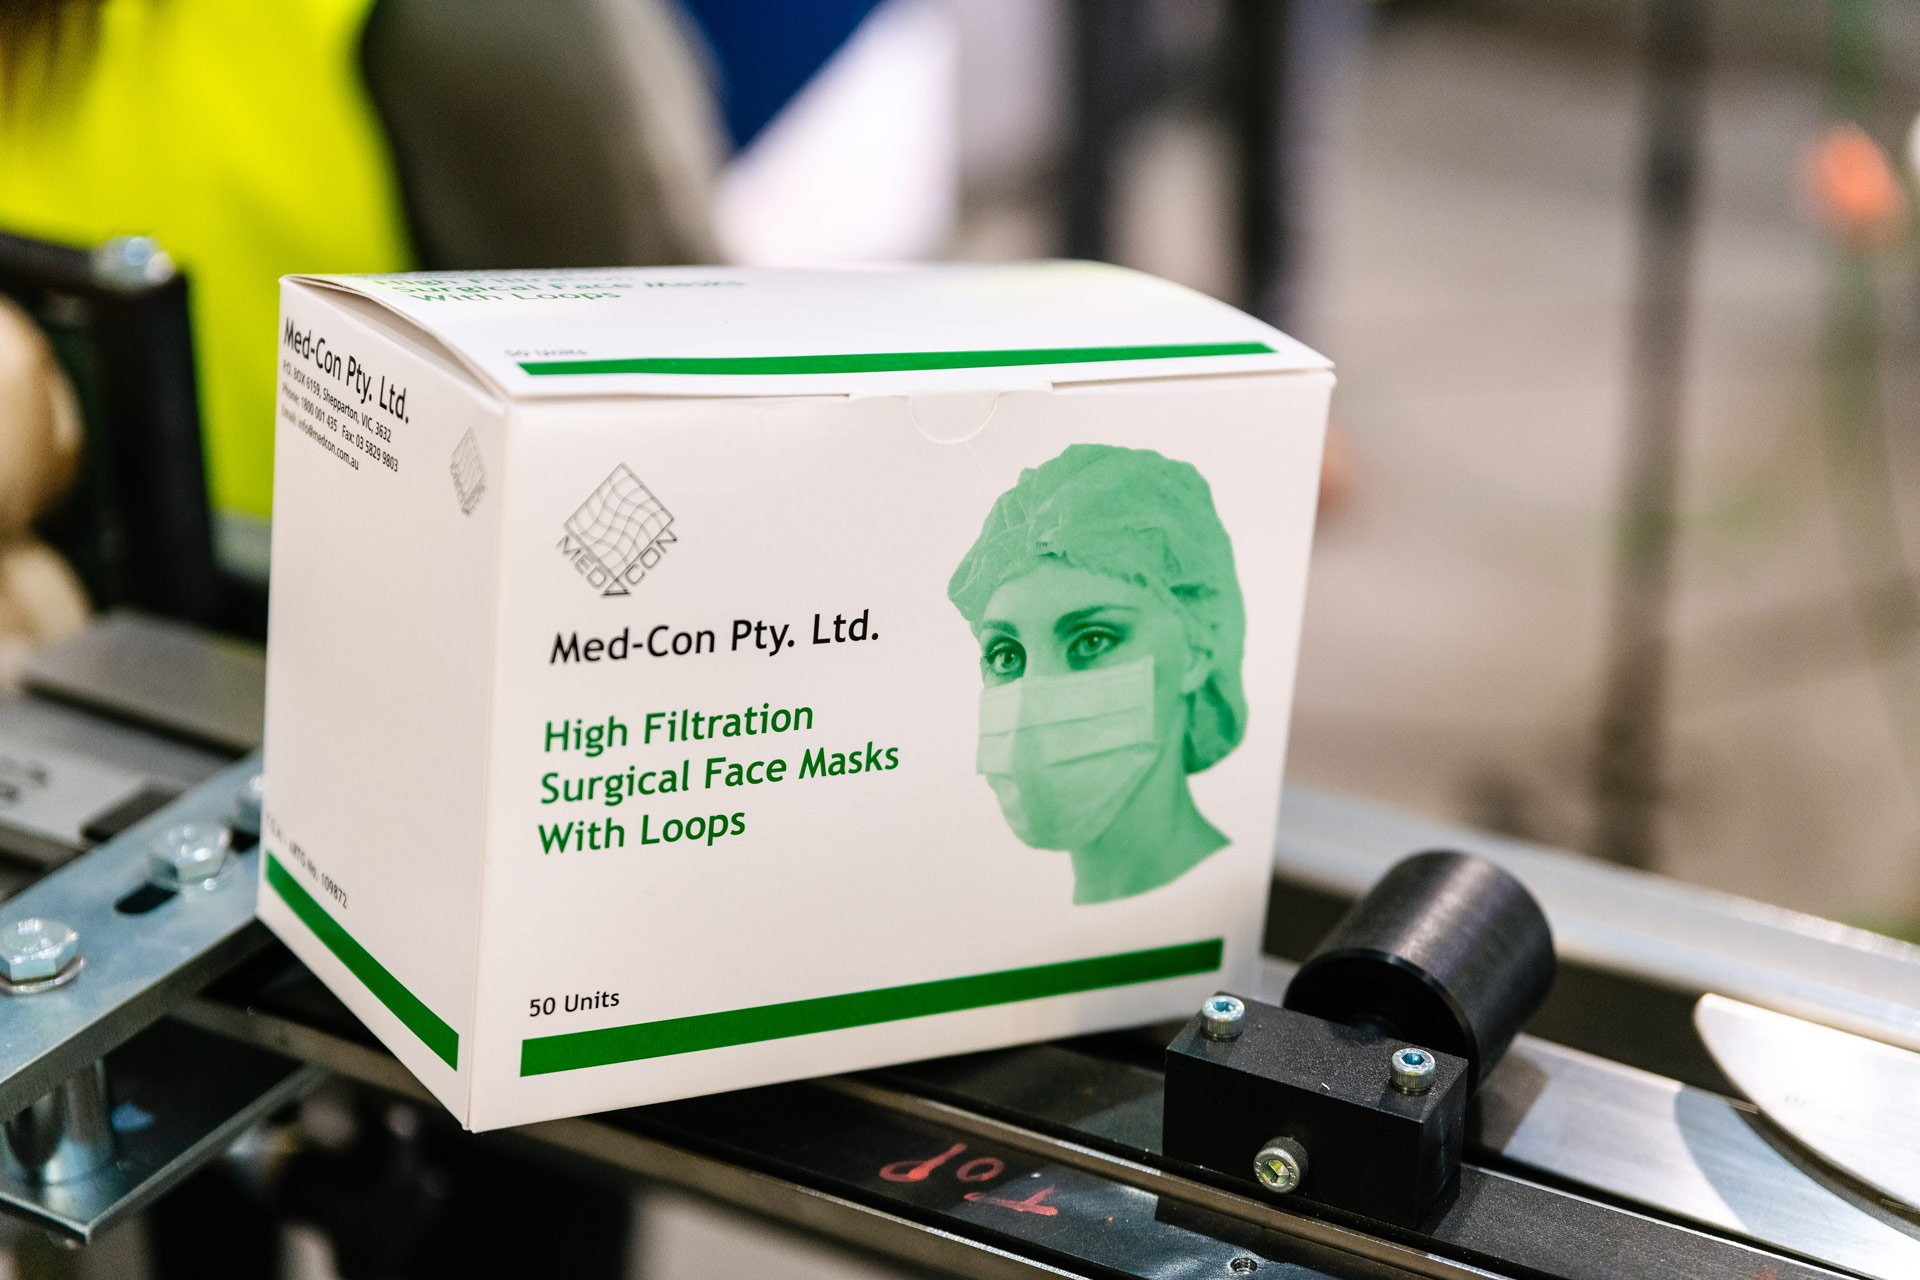 Med-Con will increase its production capacity to 160 million masks per year.